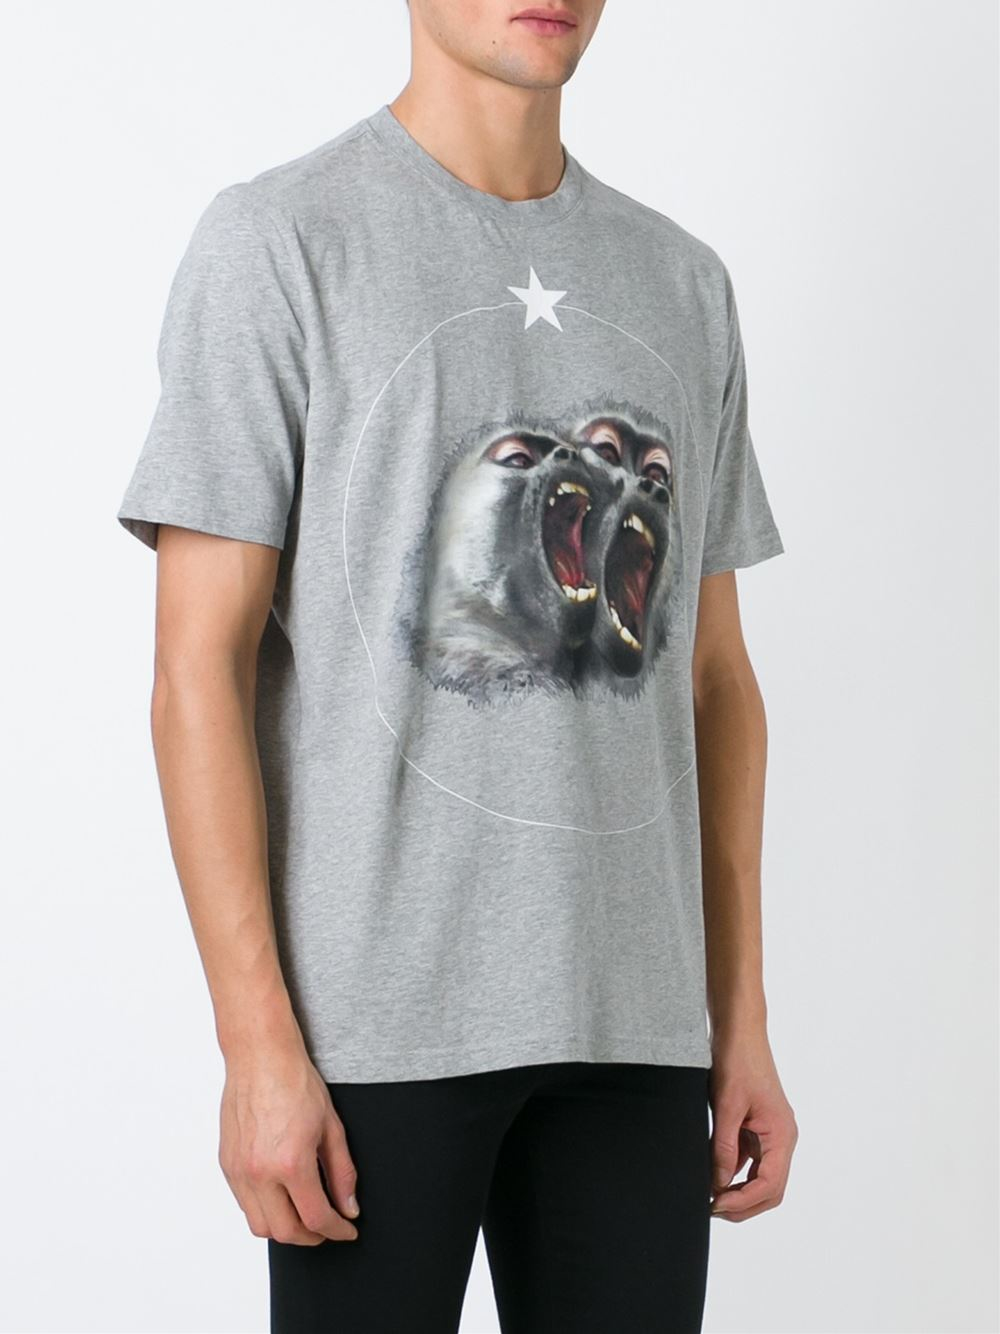 c53ae926 Givenchy Monkey Brothers Printed T-shirt in Gray - Lyst